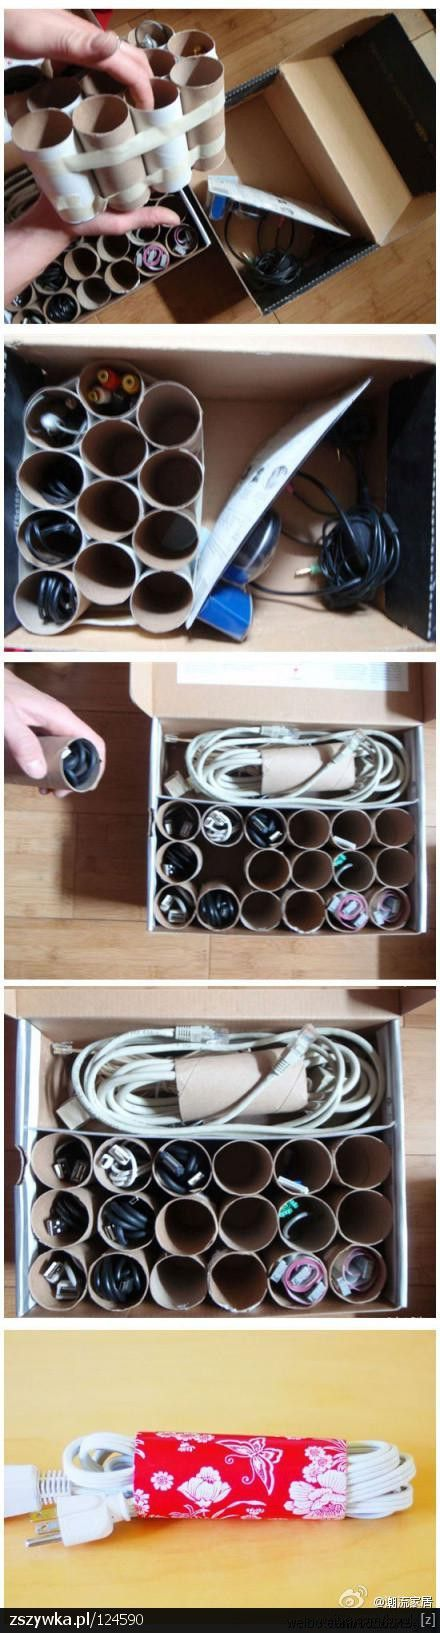 This could make dealing with all those pesky cords much easier.